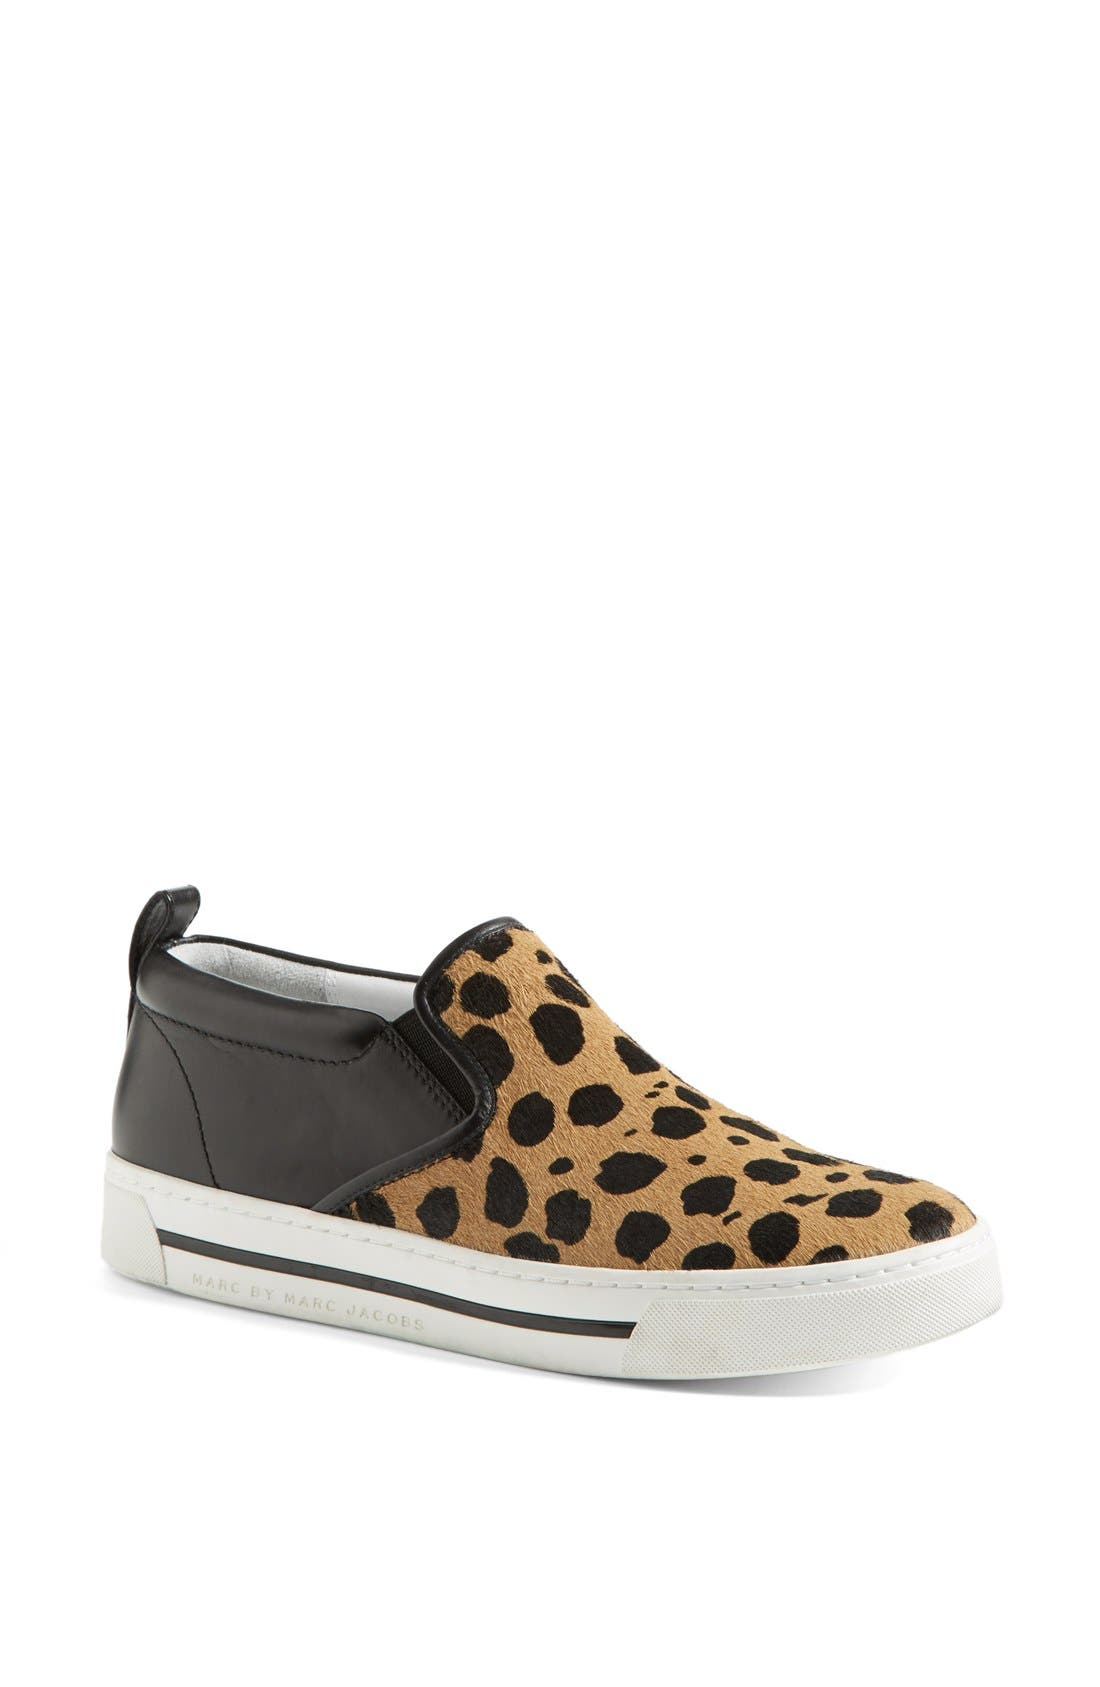 Main Image - MARC BY MARC JACOBS Leather & Calf Hair Slip-On Sneaker